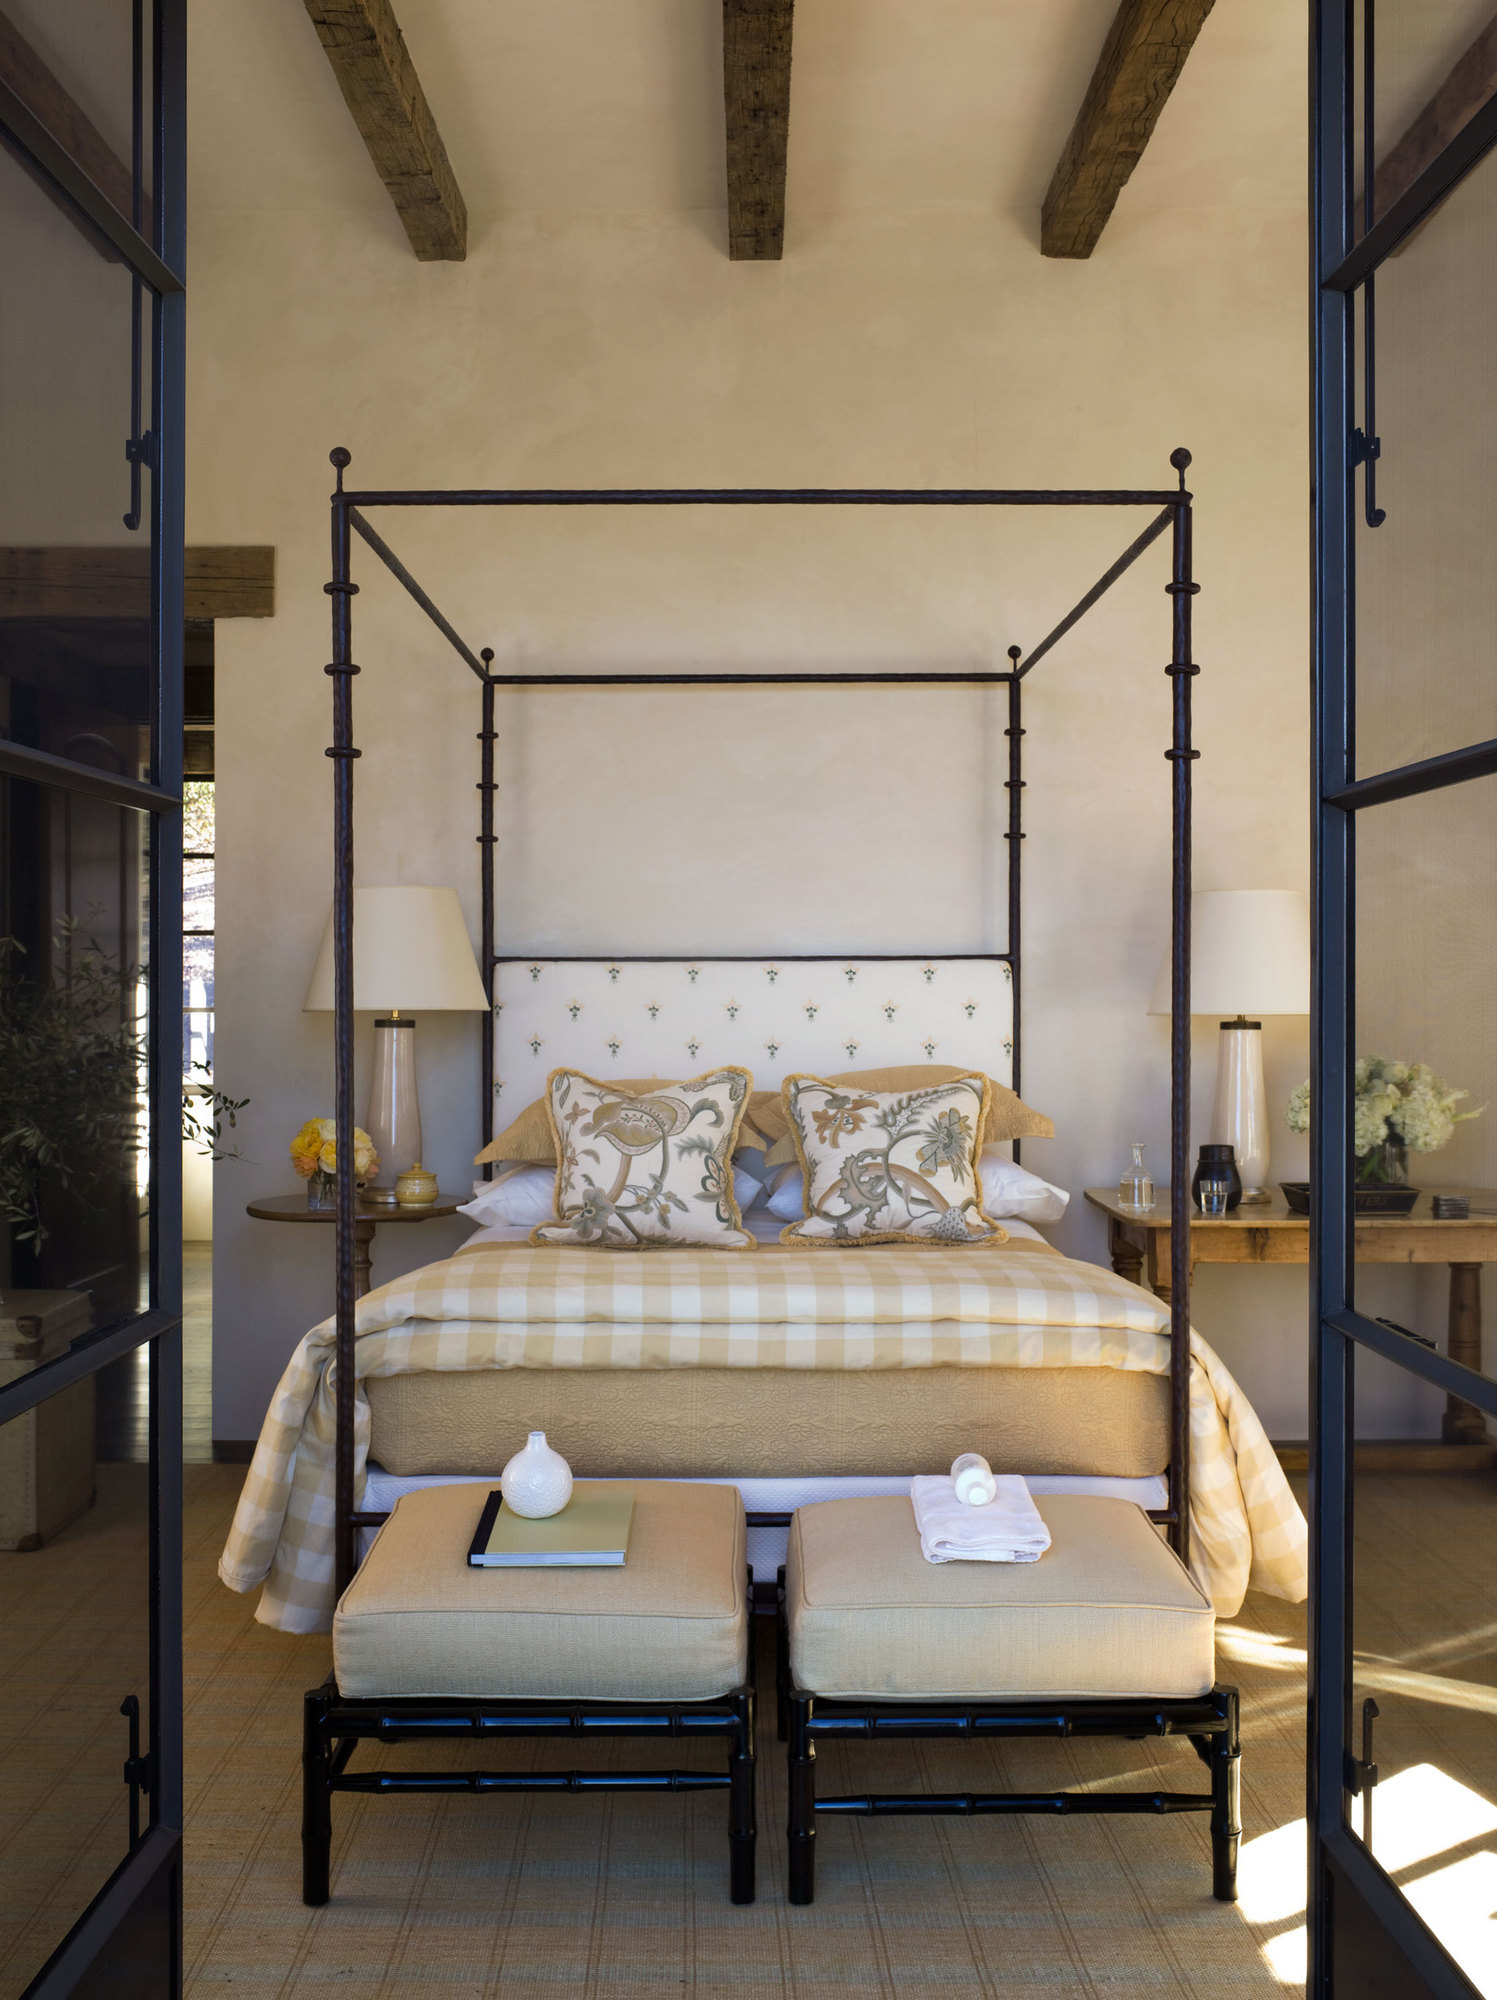 Napa Valley, California bedroom design